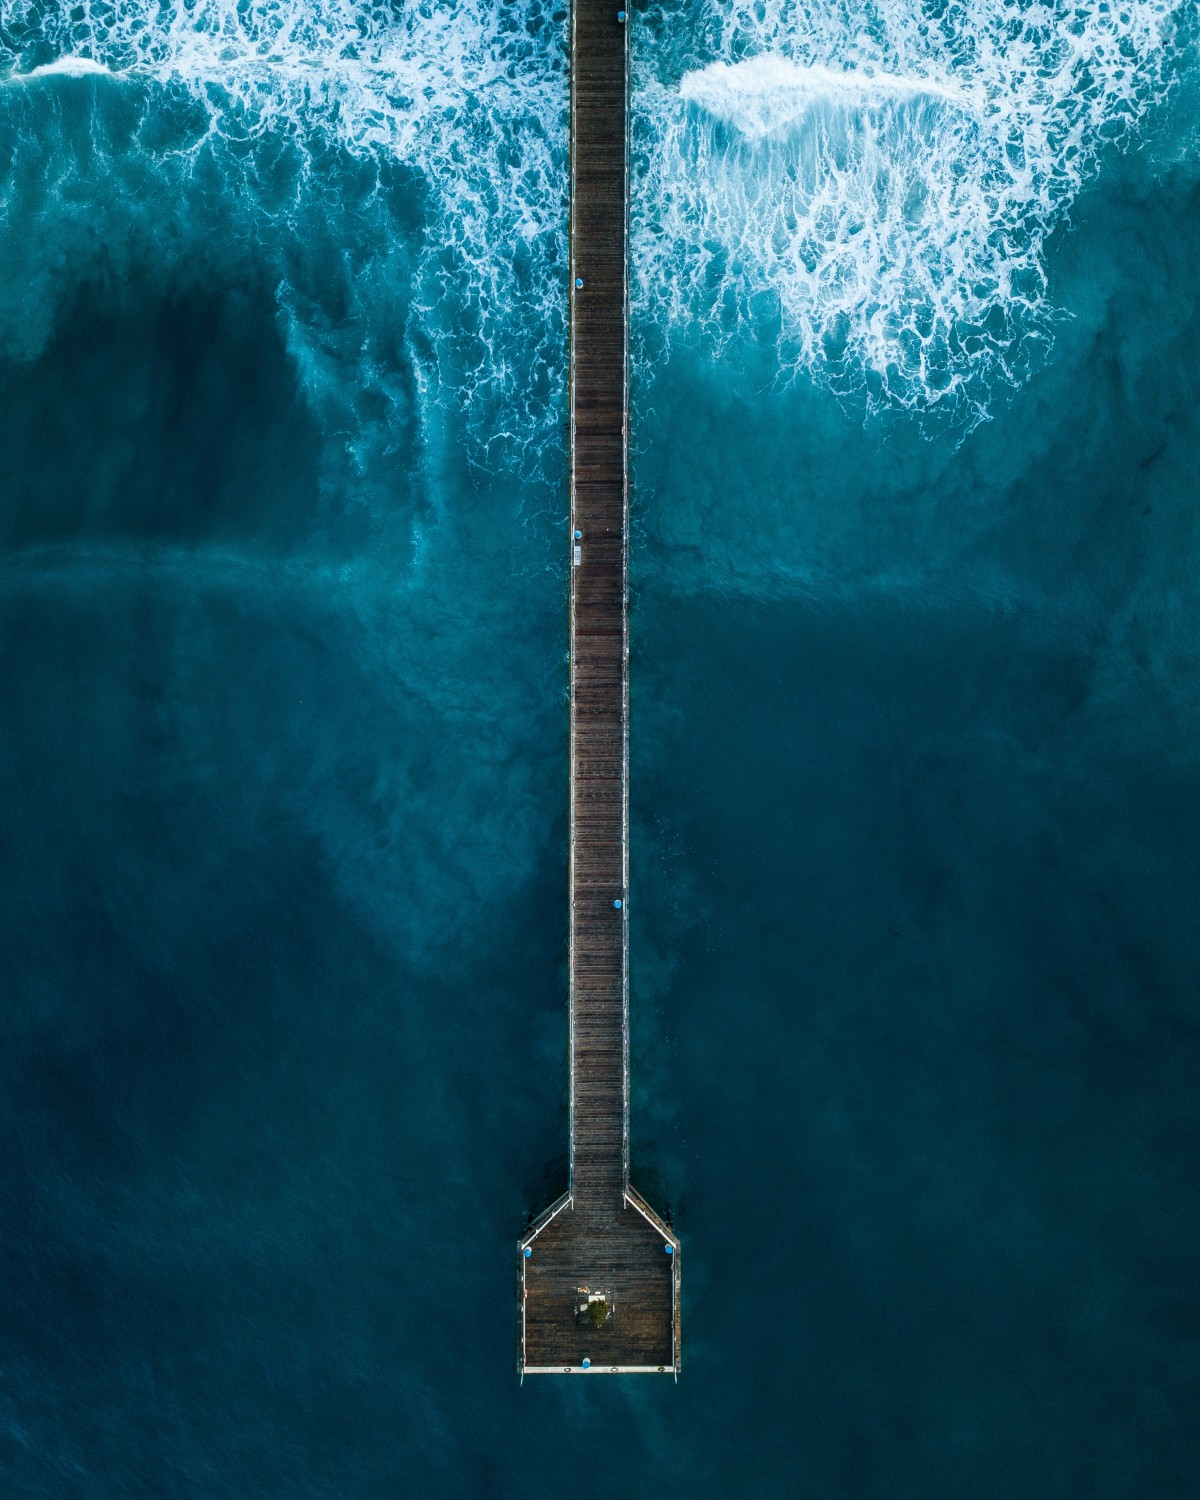 Birdseye view of a jetty